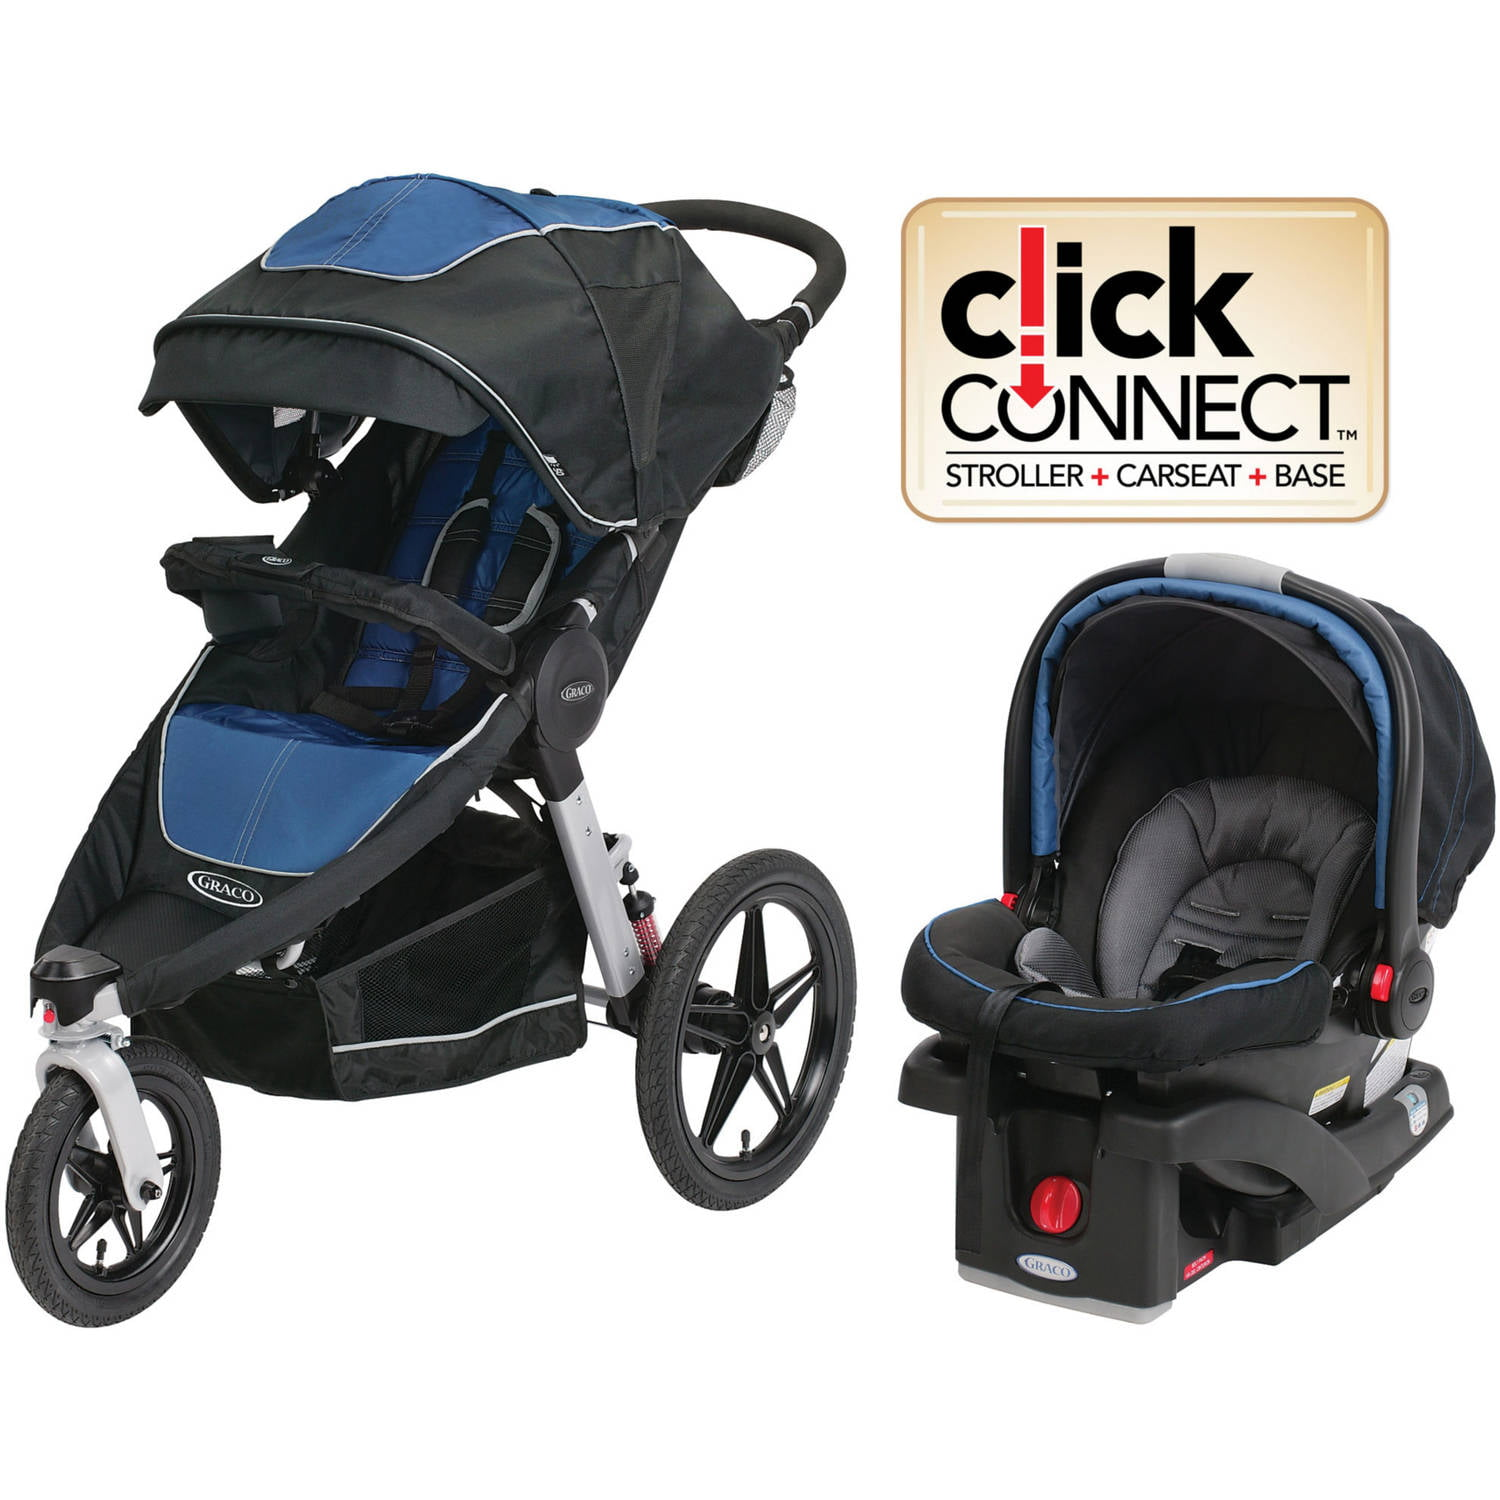 Graco Relay Connect Travel System Car Seat Stroller bo Jaguar Walmart